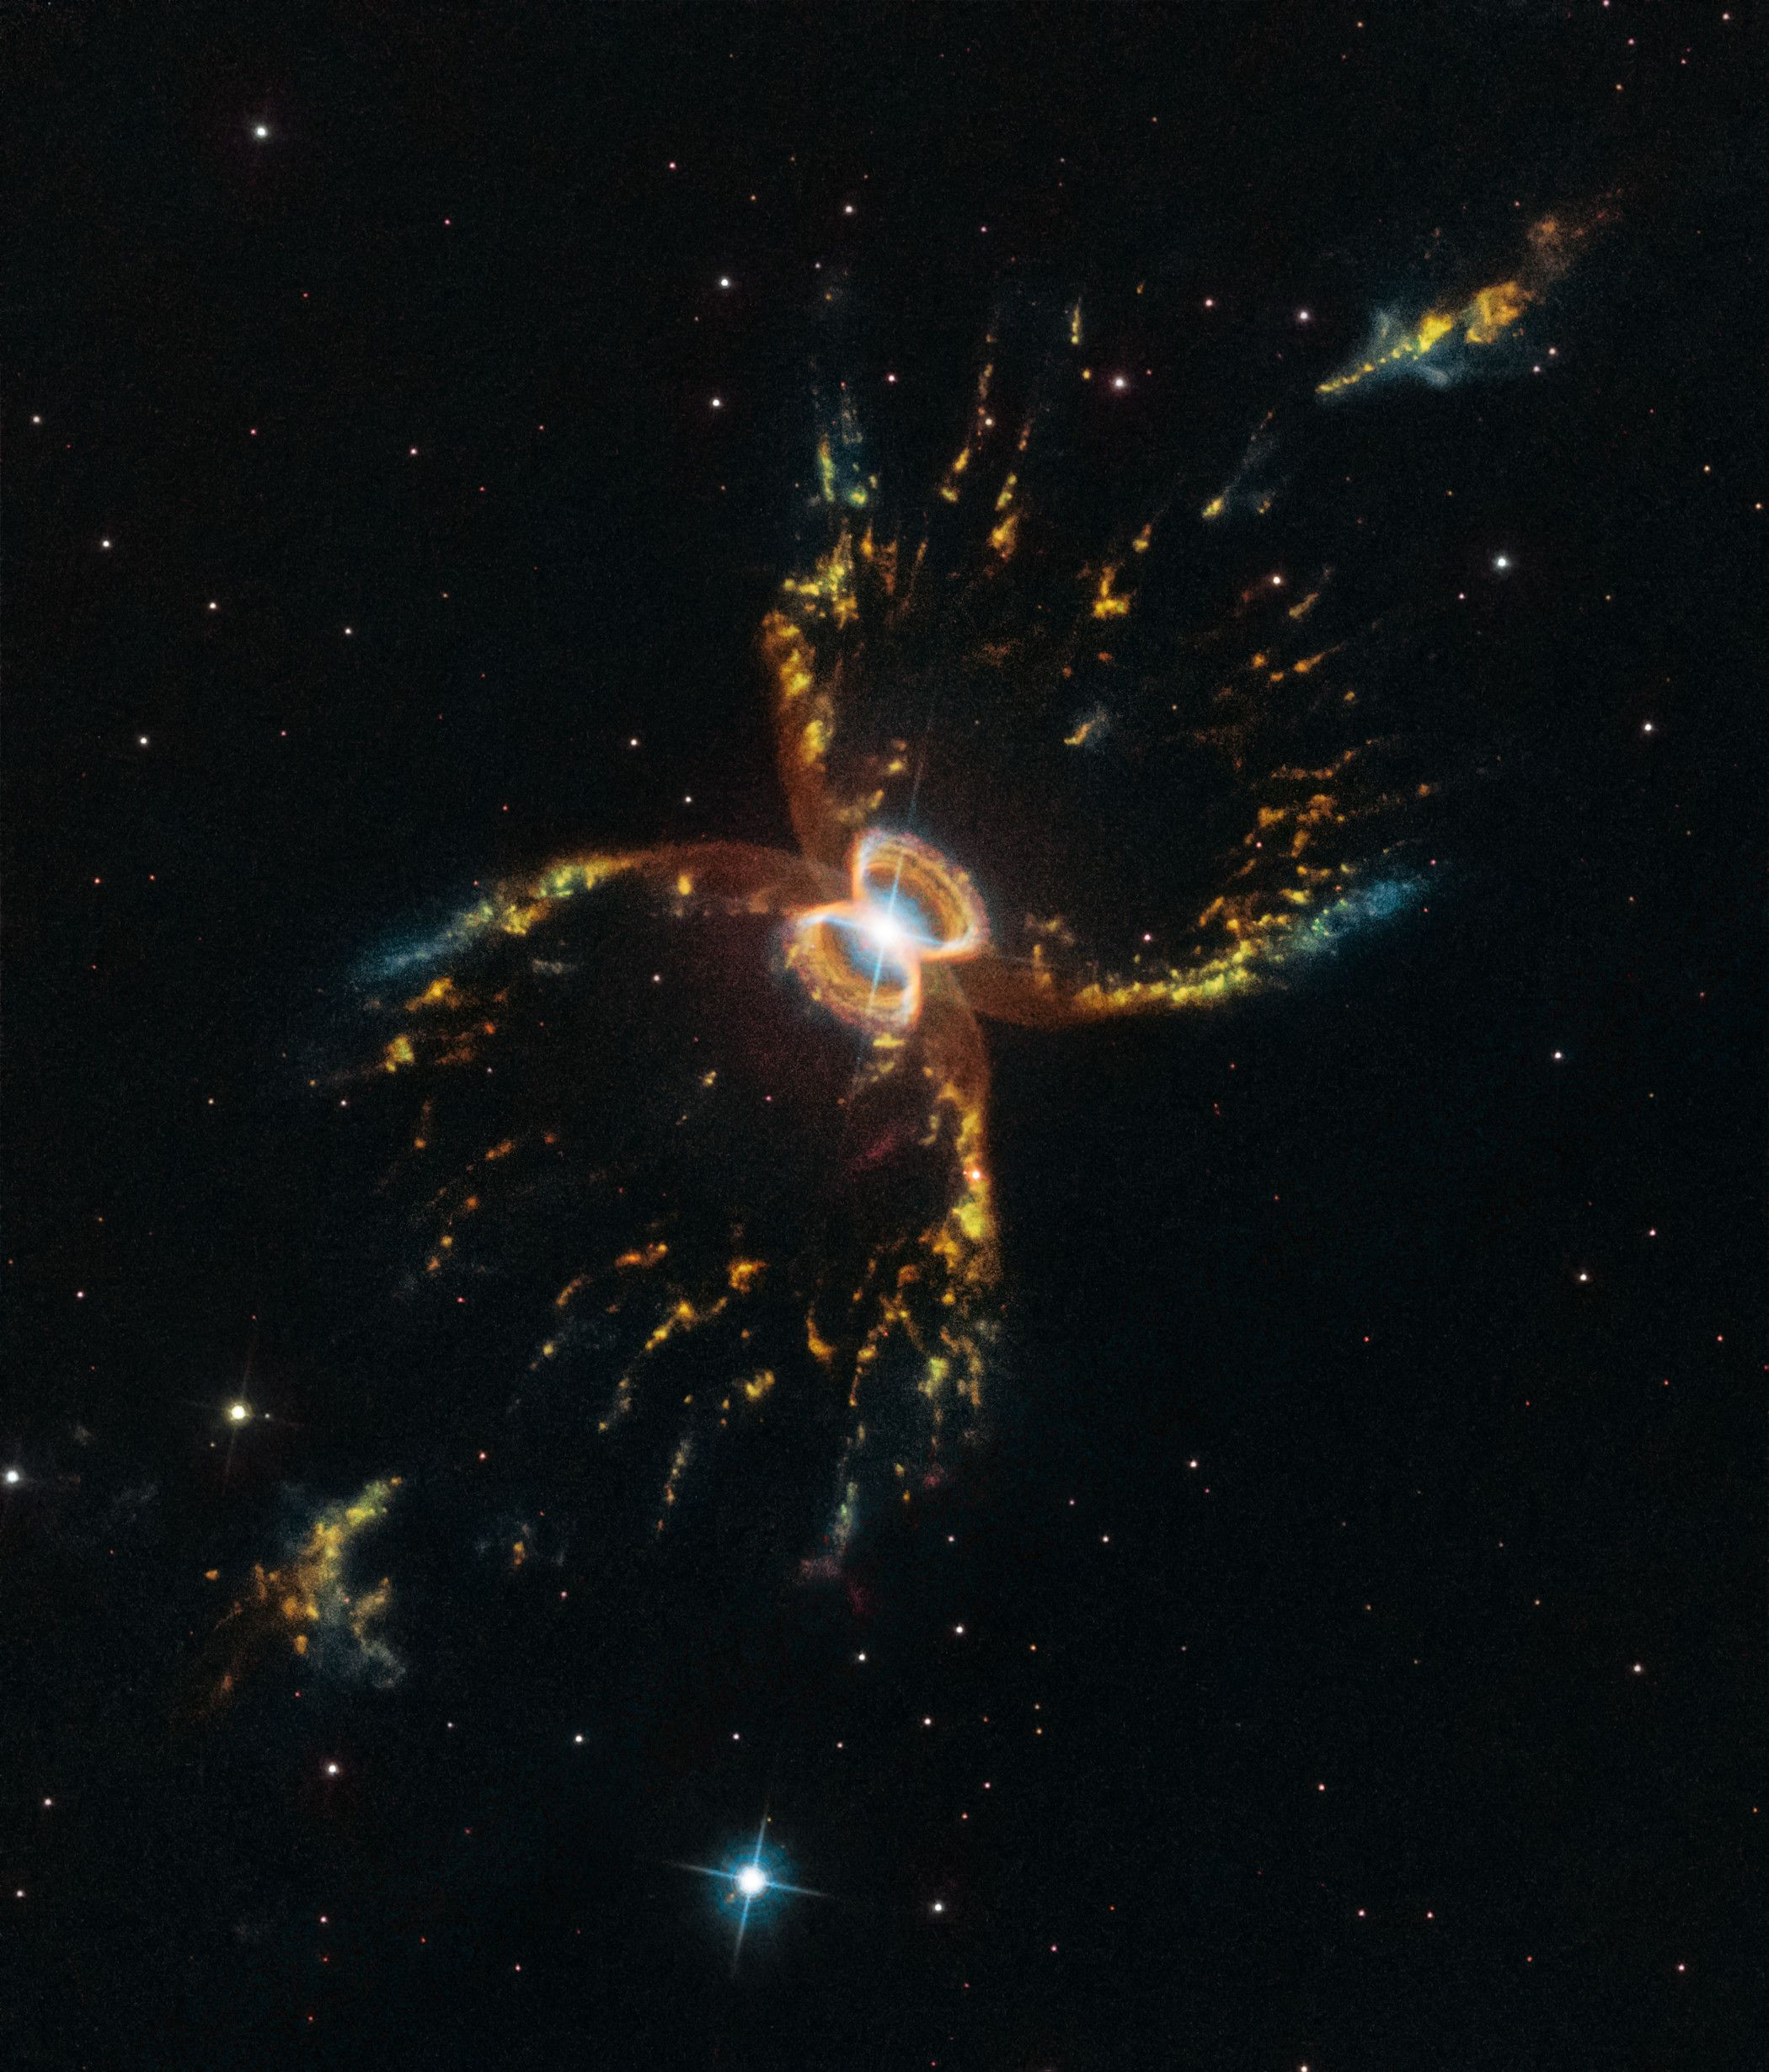 Hubble Reveals Amazing New View of the Southern Crab